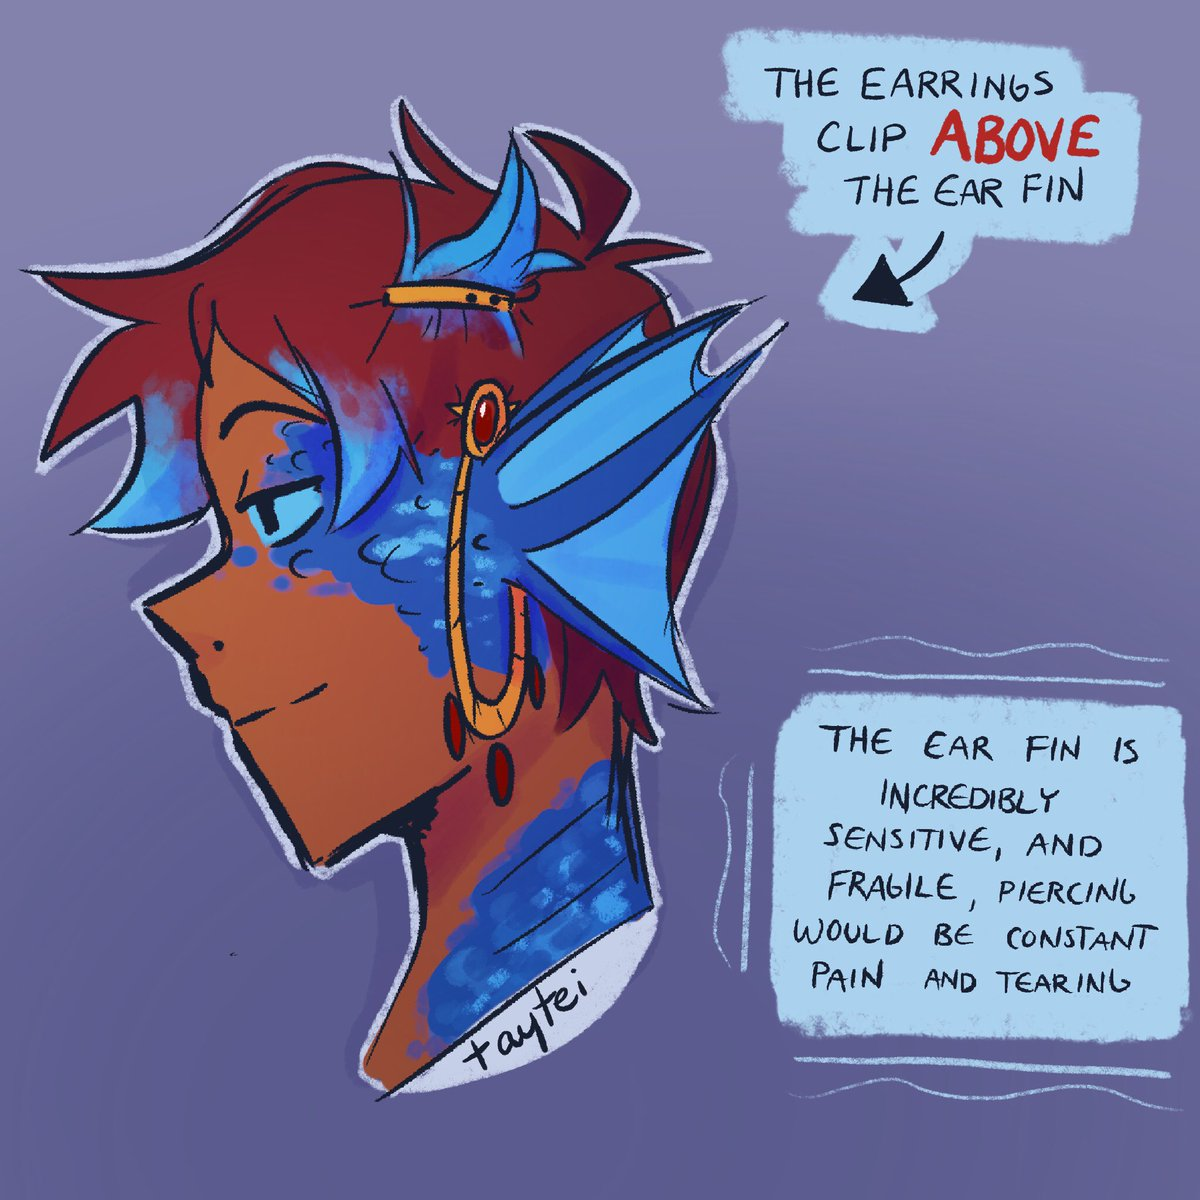 Someone asked how earrings worked with Lance's ears, so boom. I decided to make art for it apparently   (I'm gonna make this into a sticker gskejfjfkh) <br>http://pic.twitter.com/x5nlGFilKg